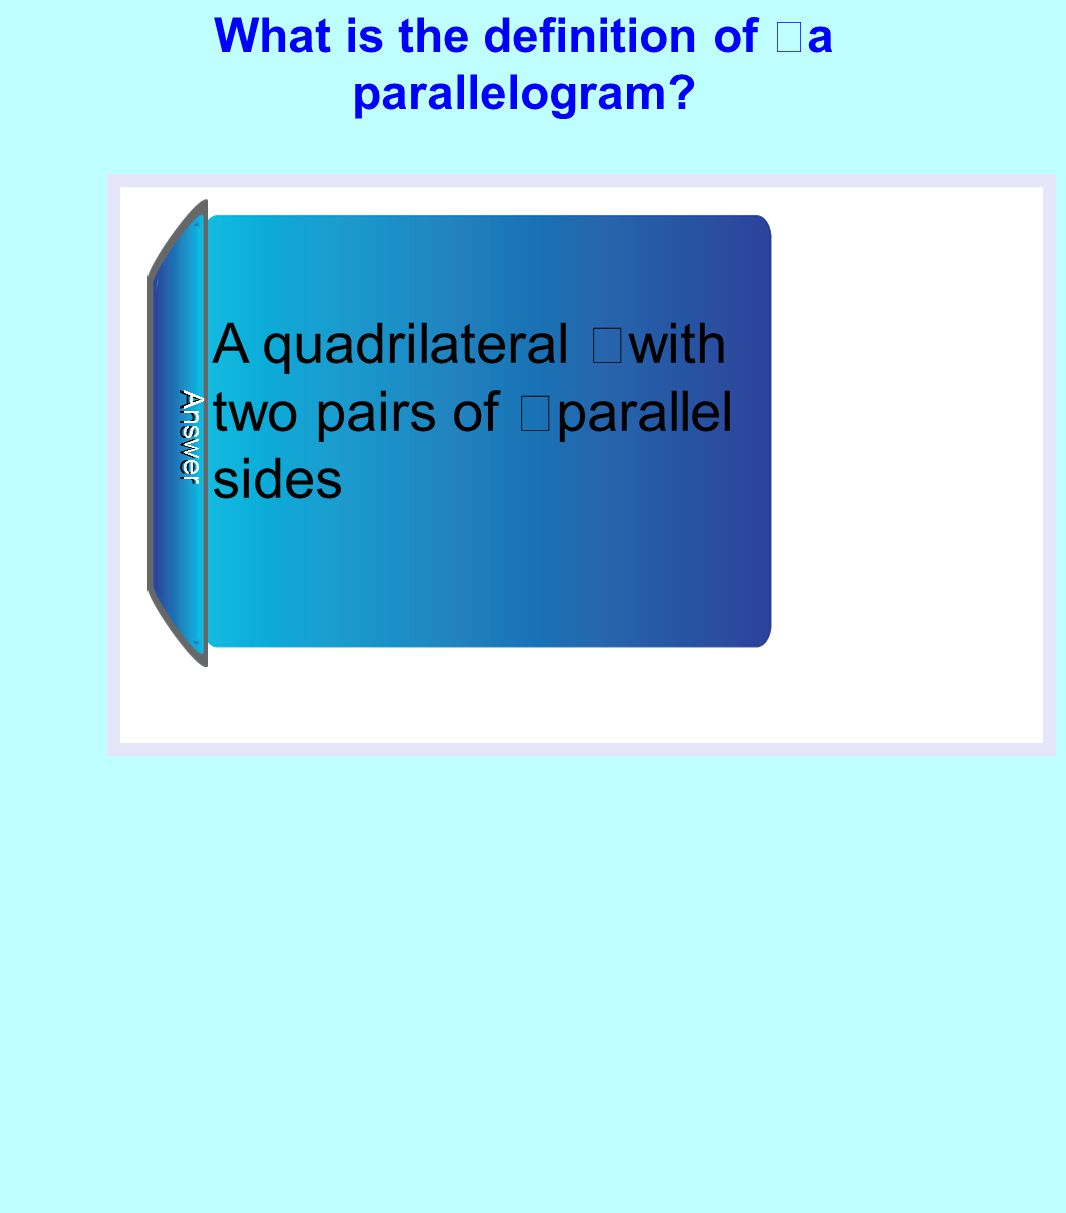 What is the definition of a parallelogram